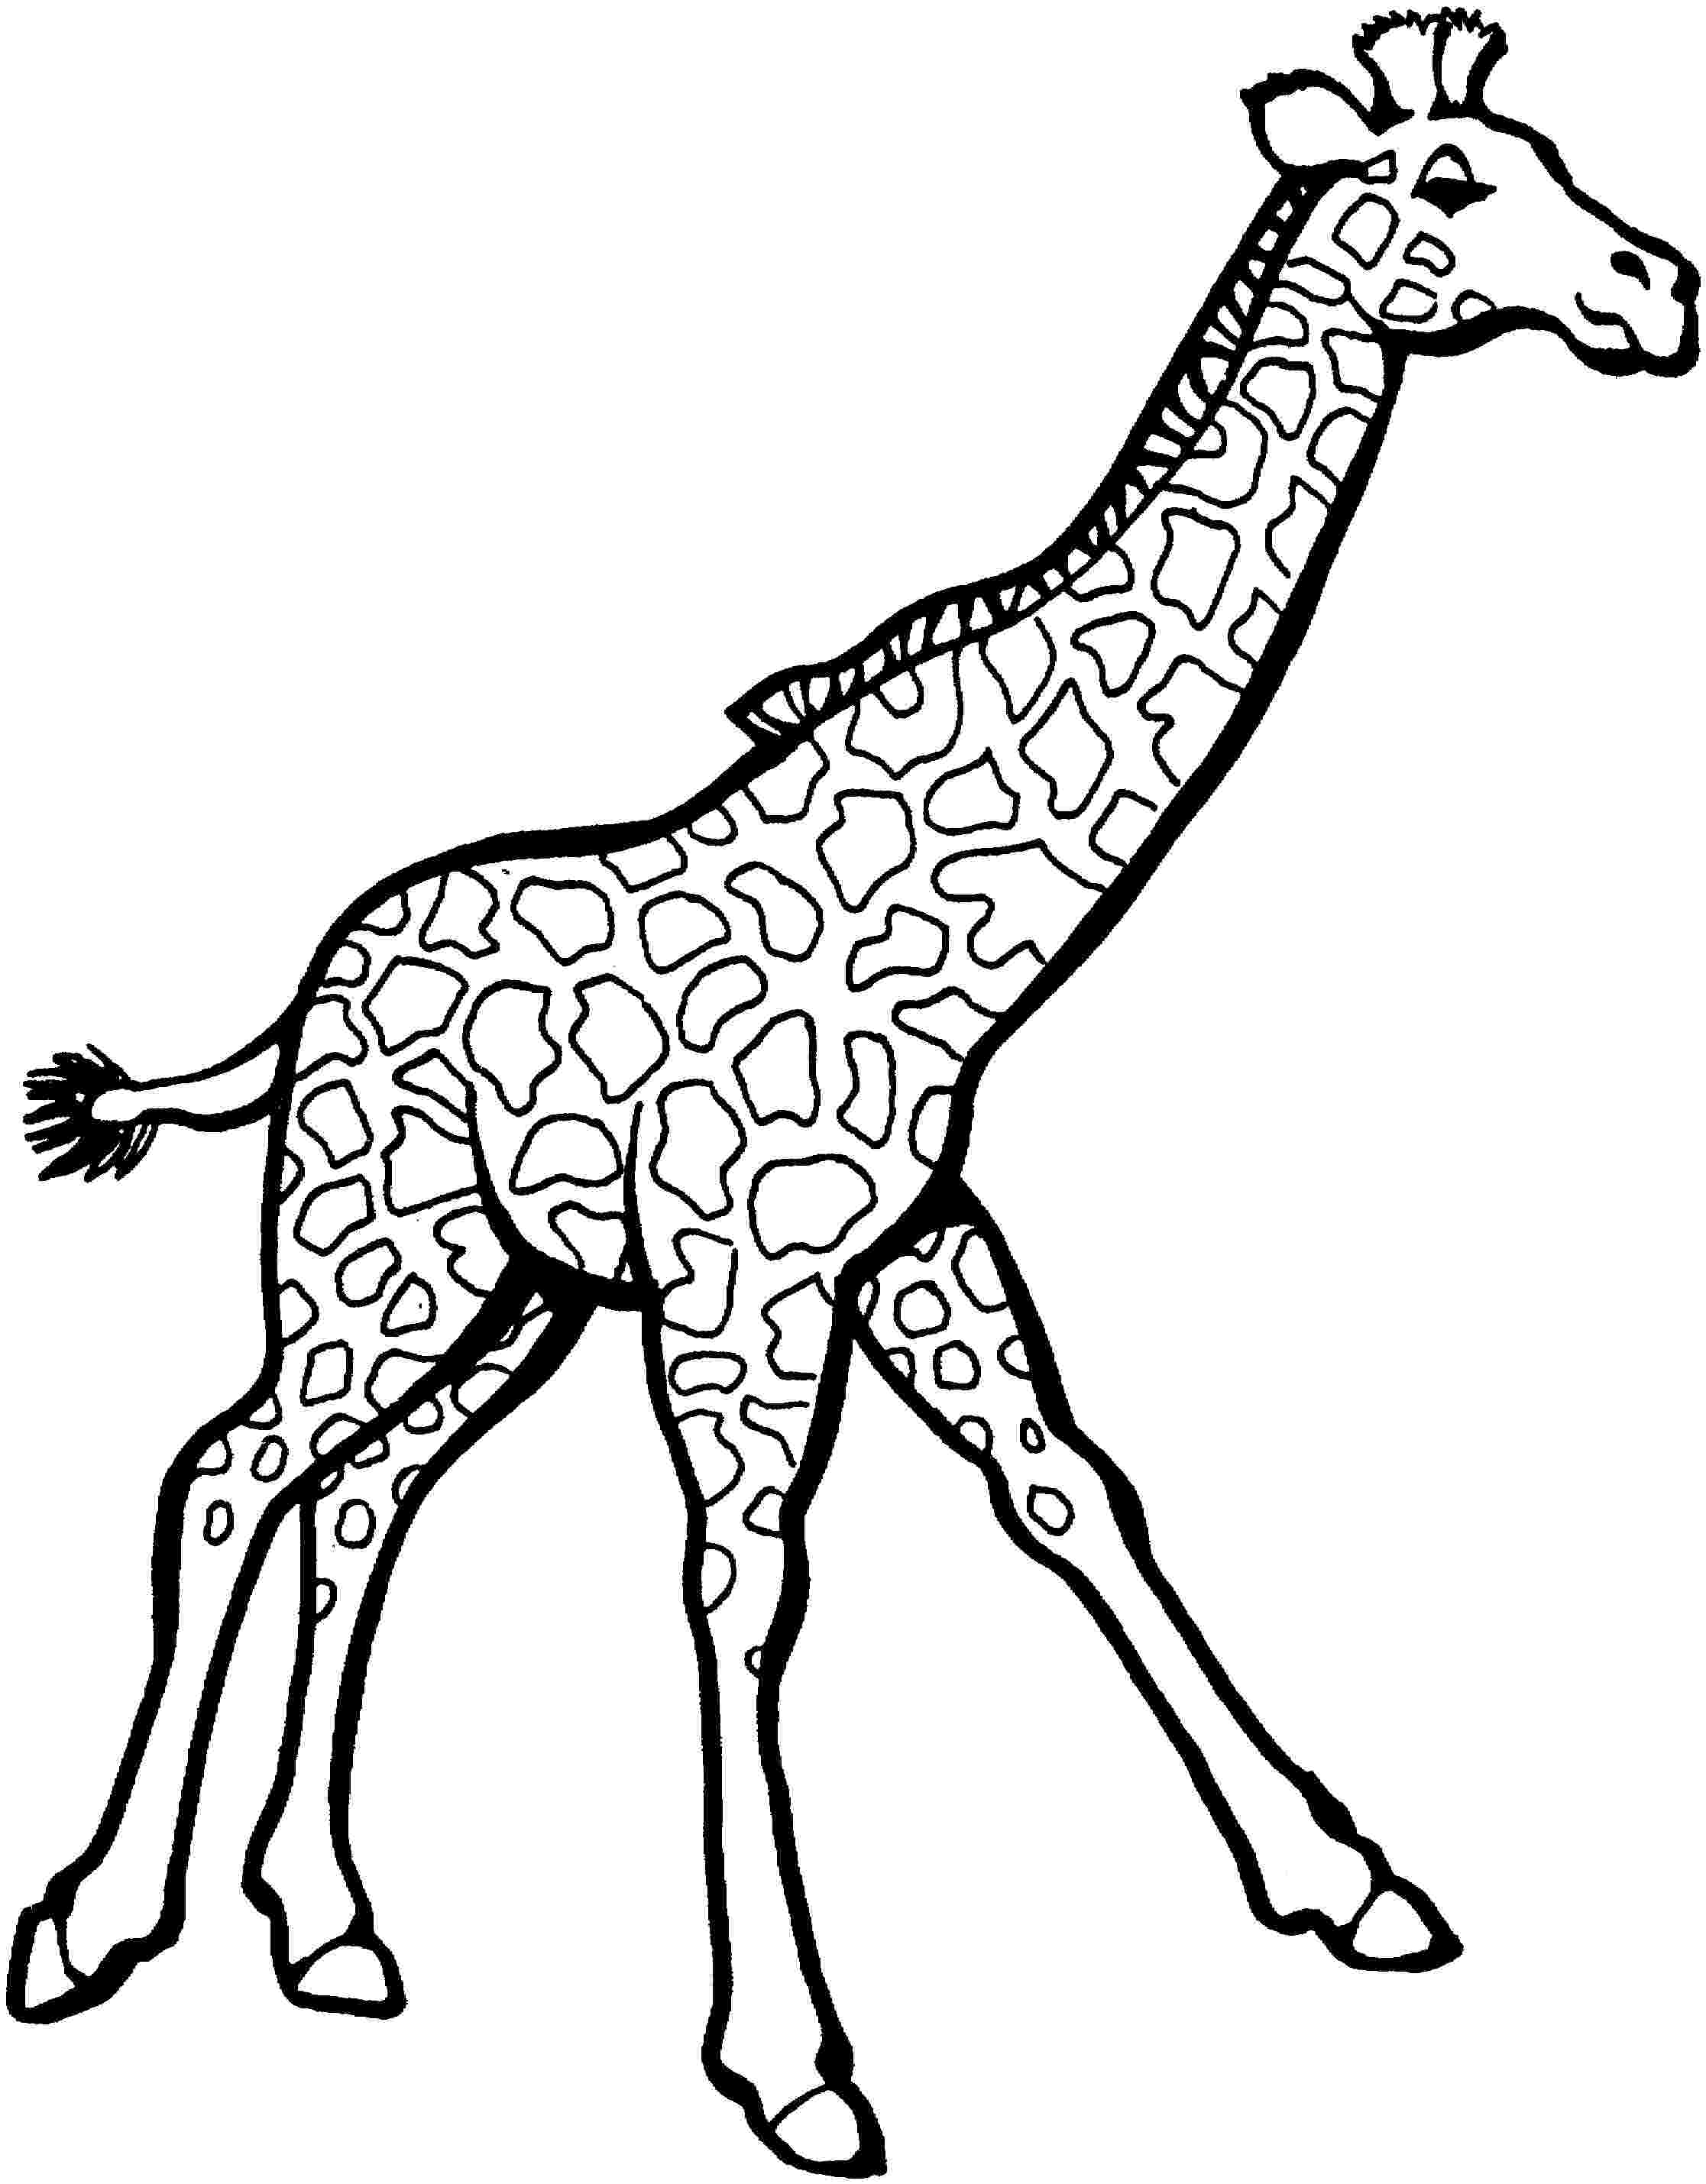 giraffe to color simple giraffe outline print out and color pictures of a giraffe to color